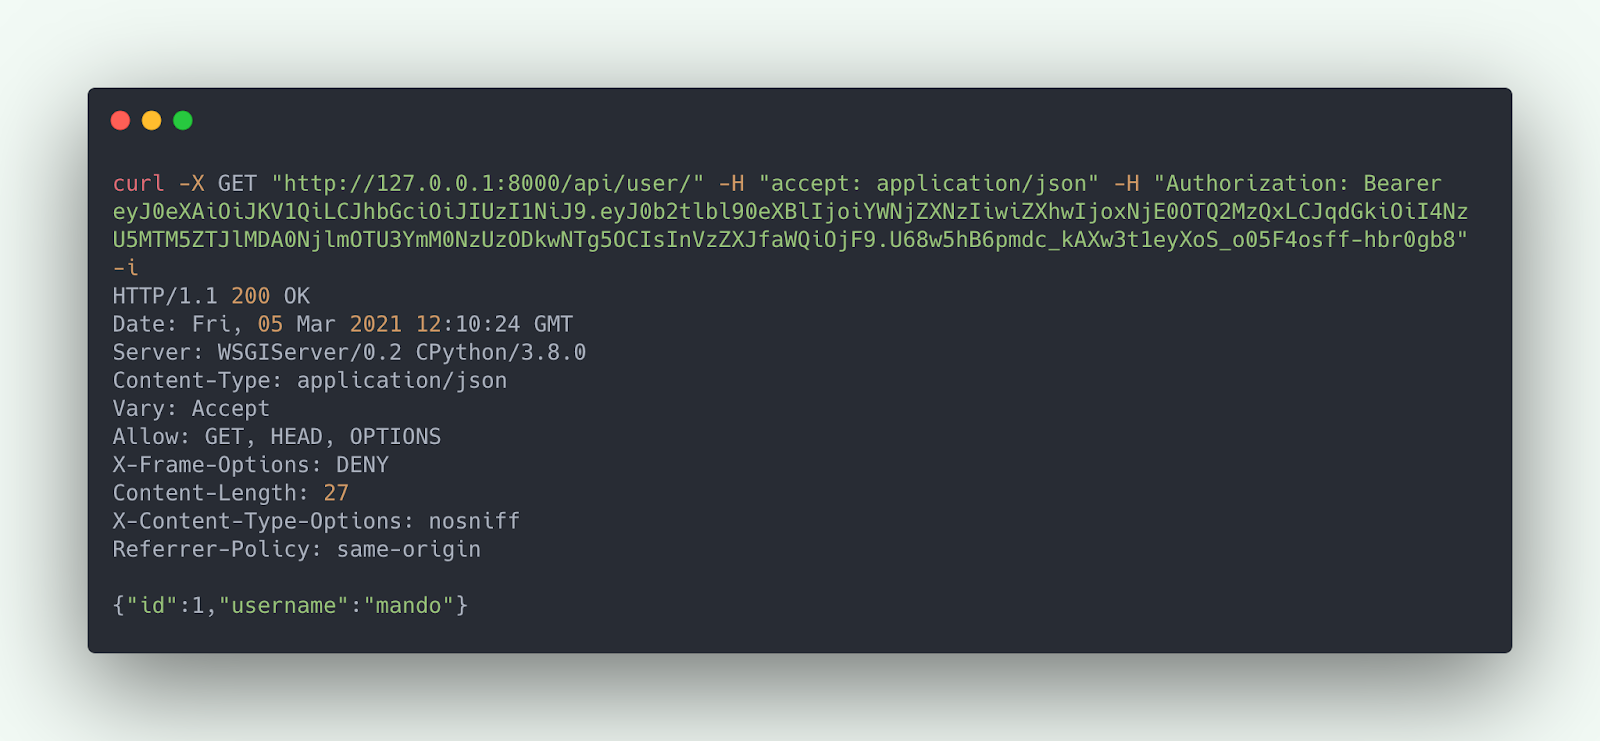 Successful HTTP request (curl) to User API with JWT Authorization